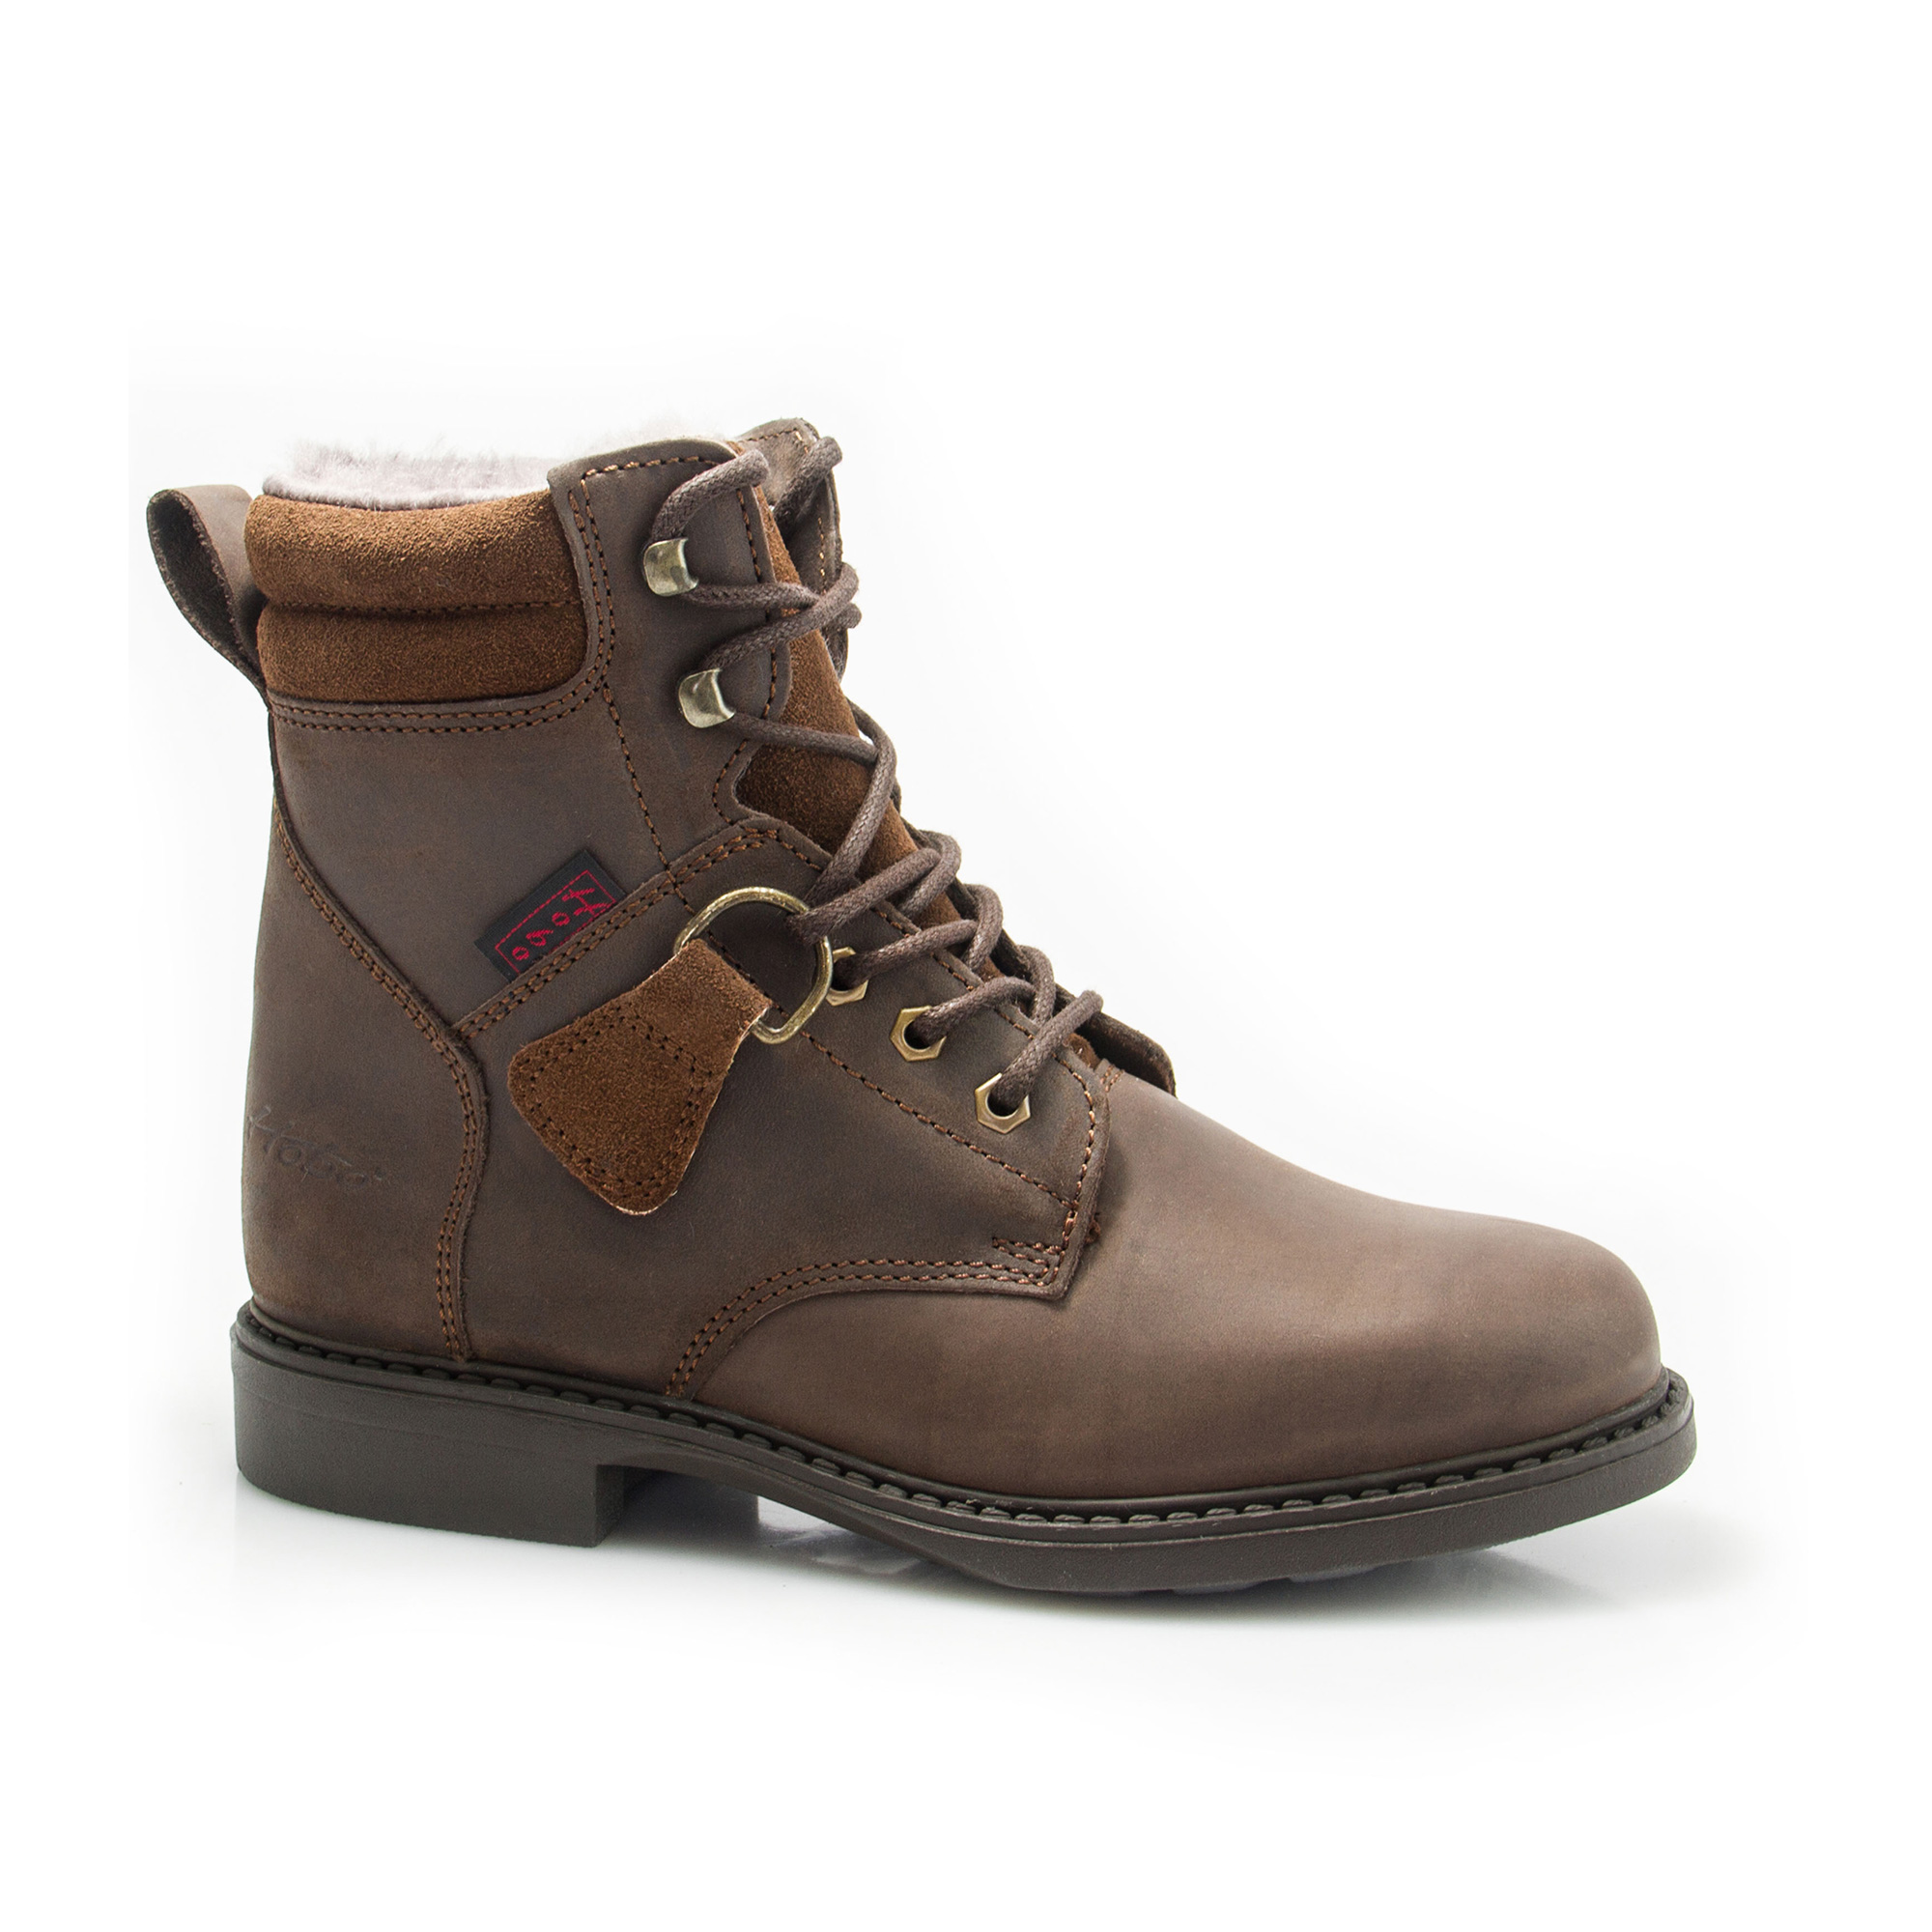 Euro Safety Shoes Online